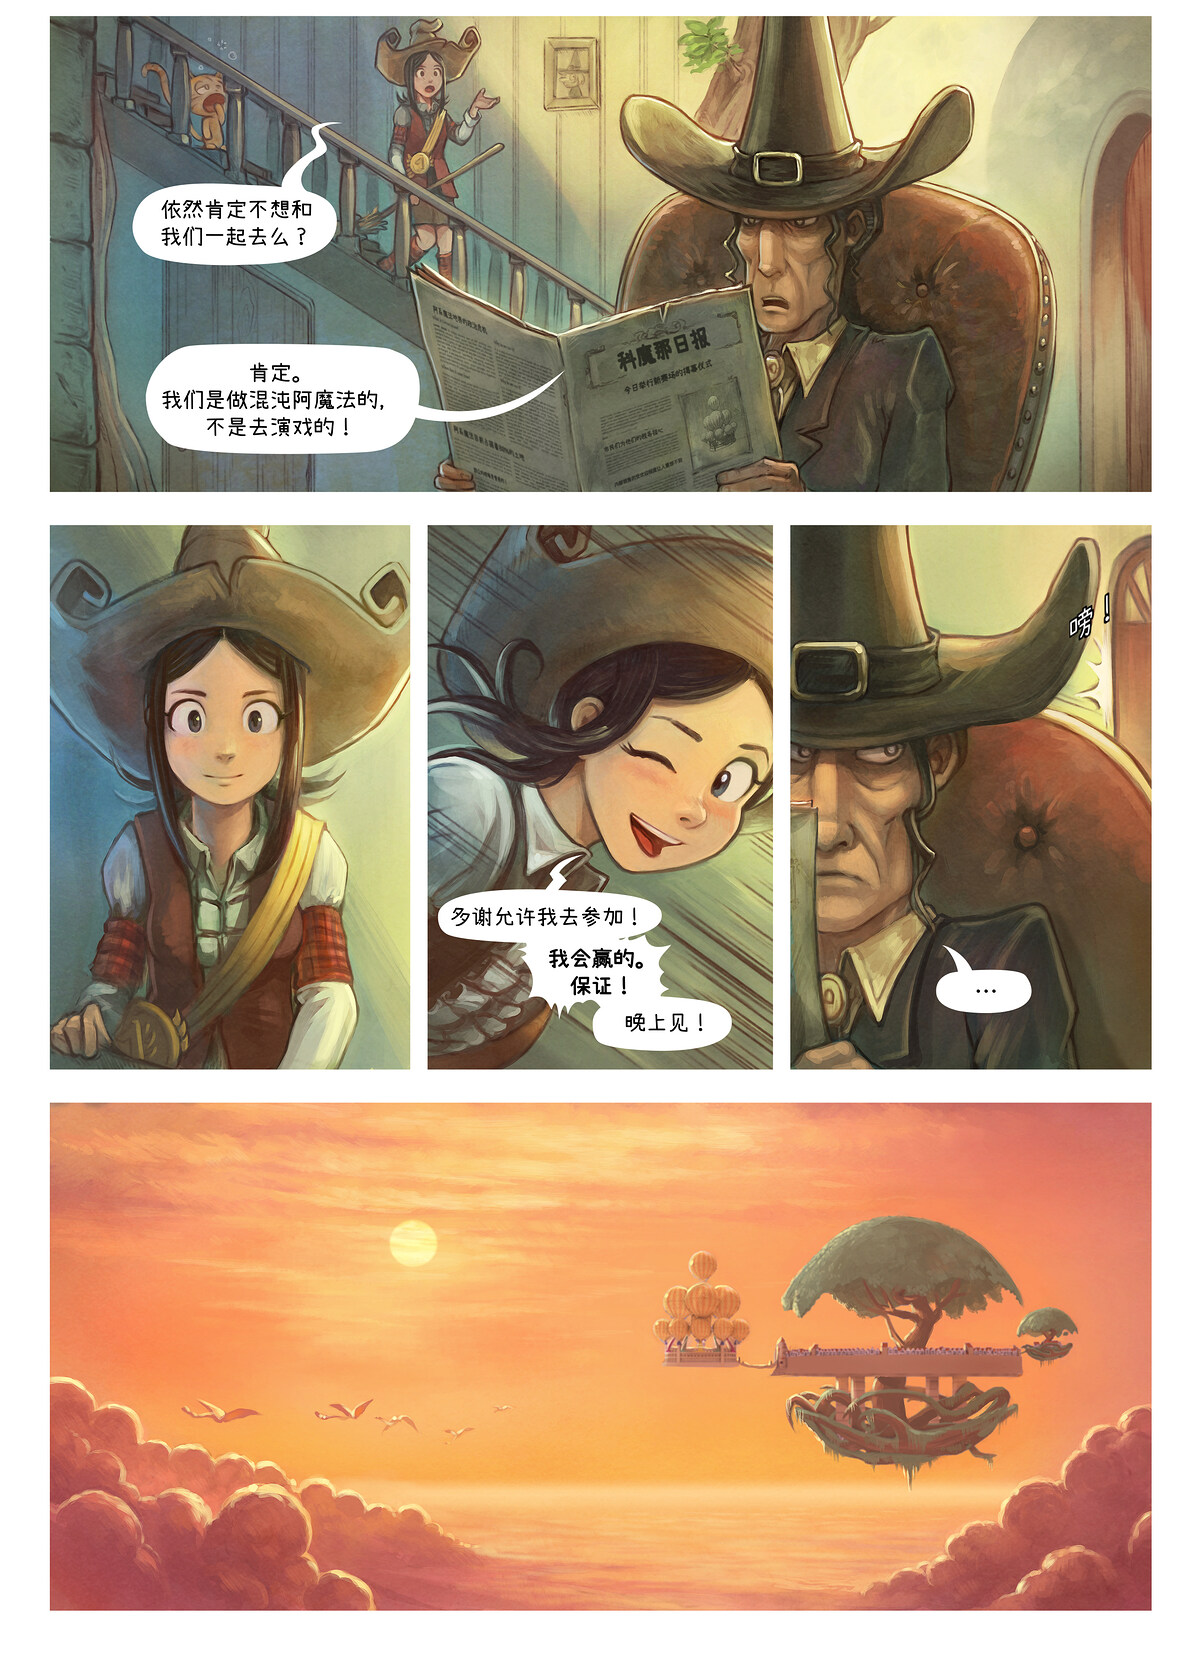 A webcomic page of Pepper&Carrot, 漫画全集 21 [cn], 页面 2